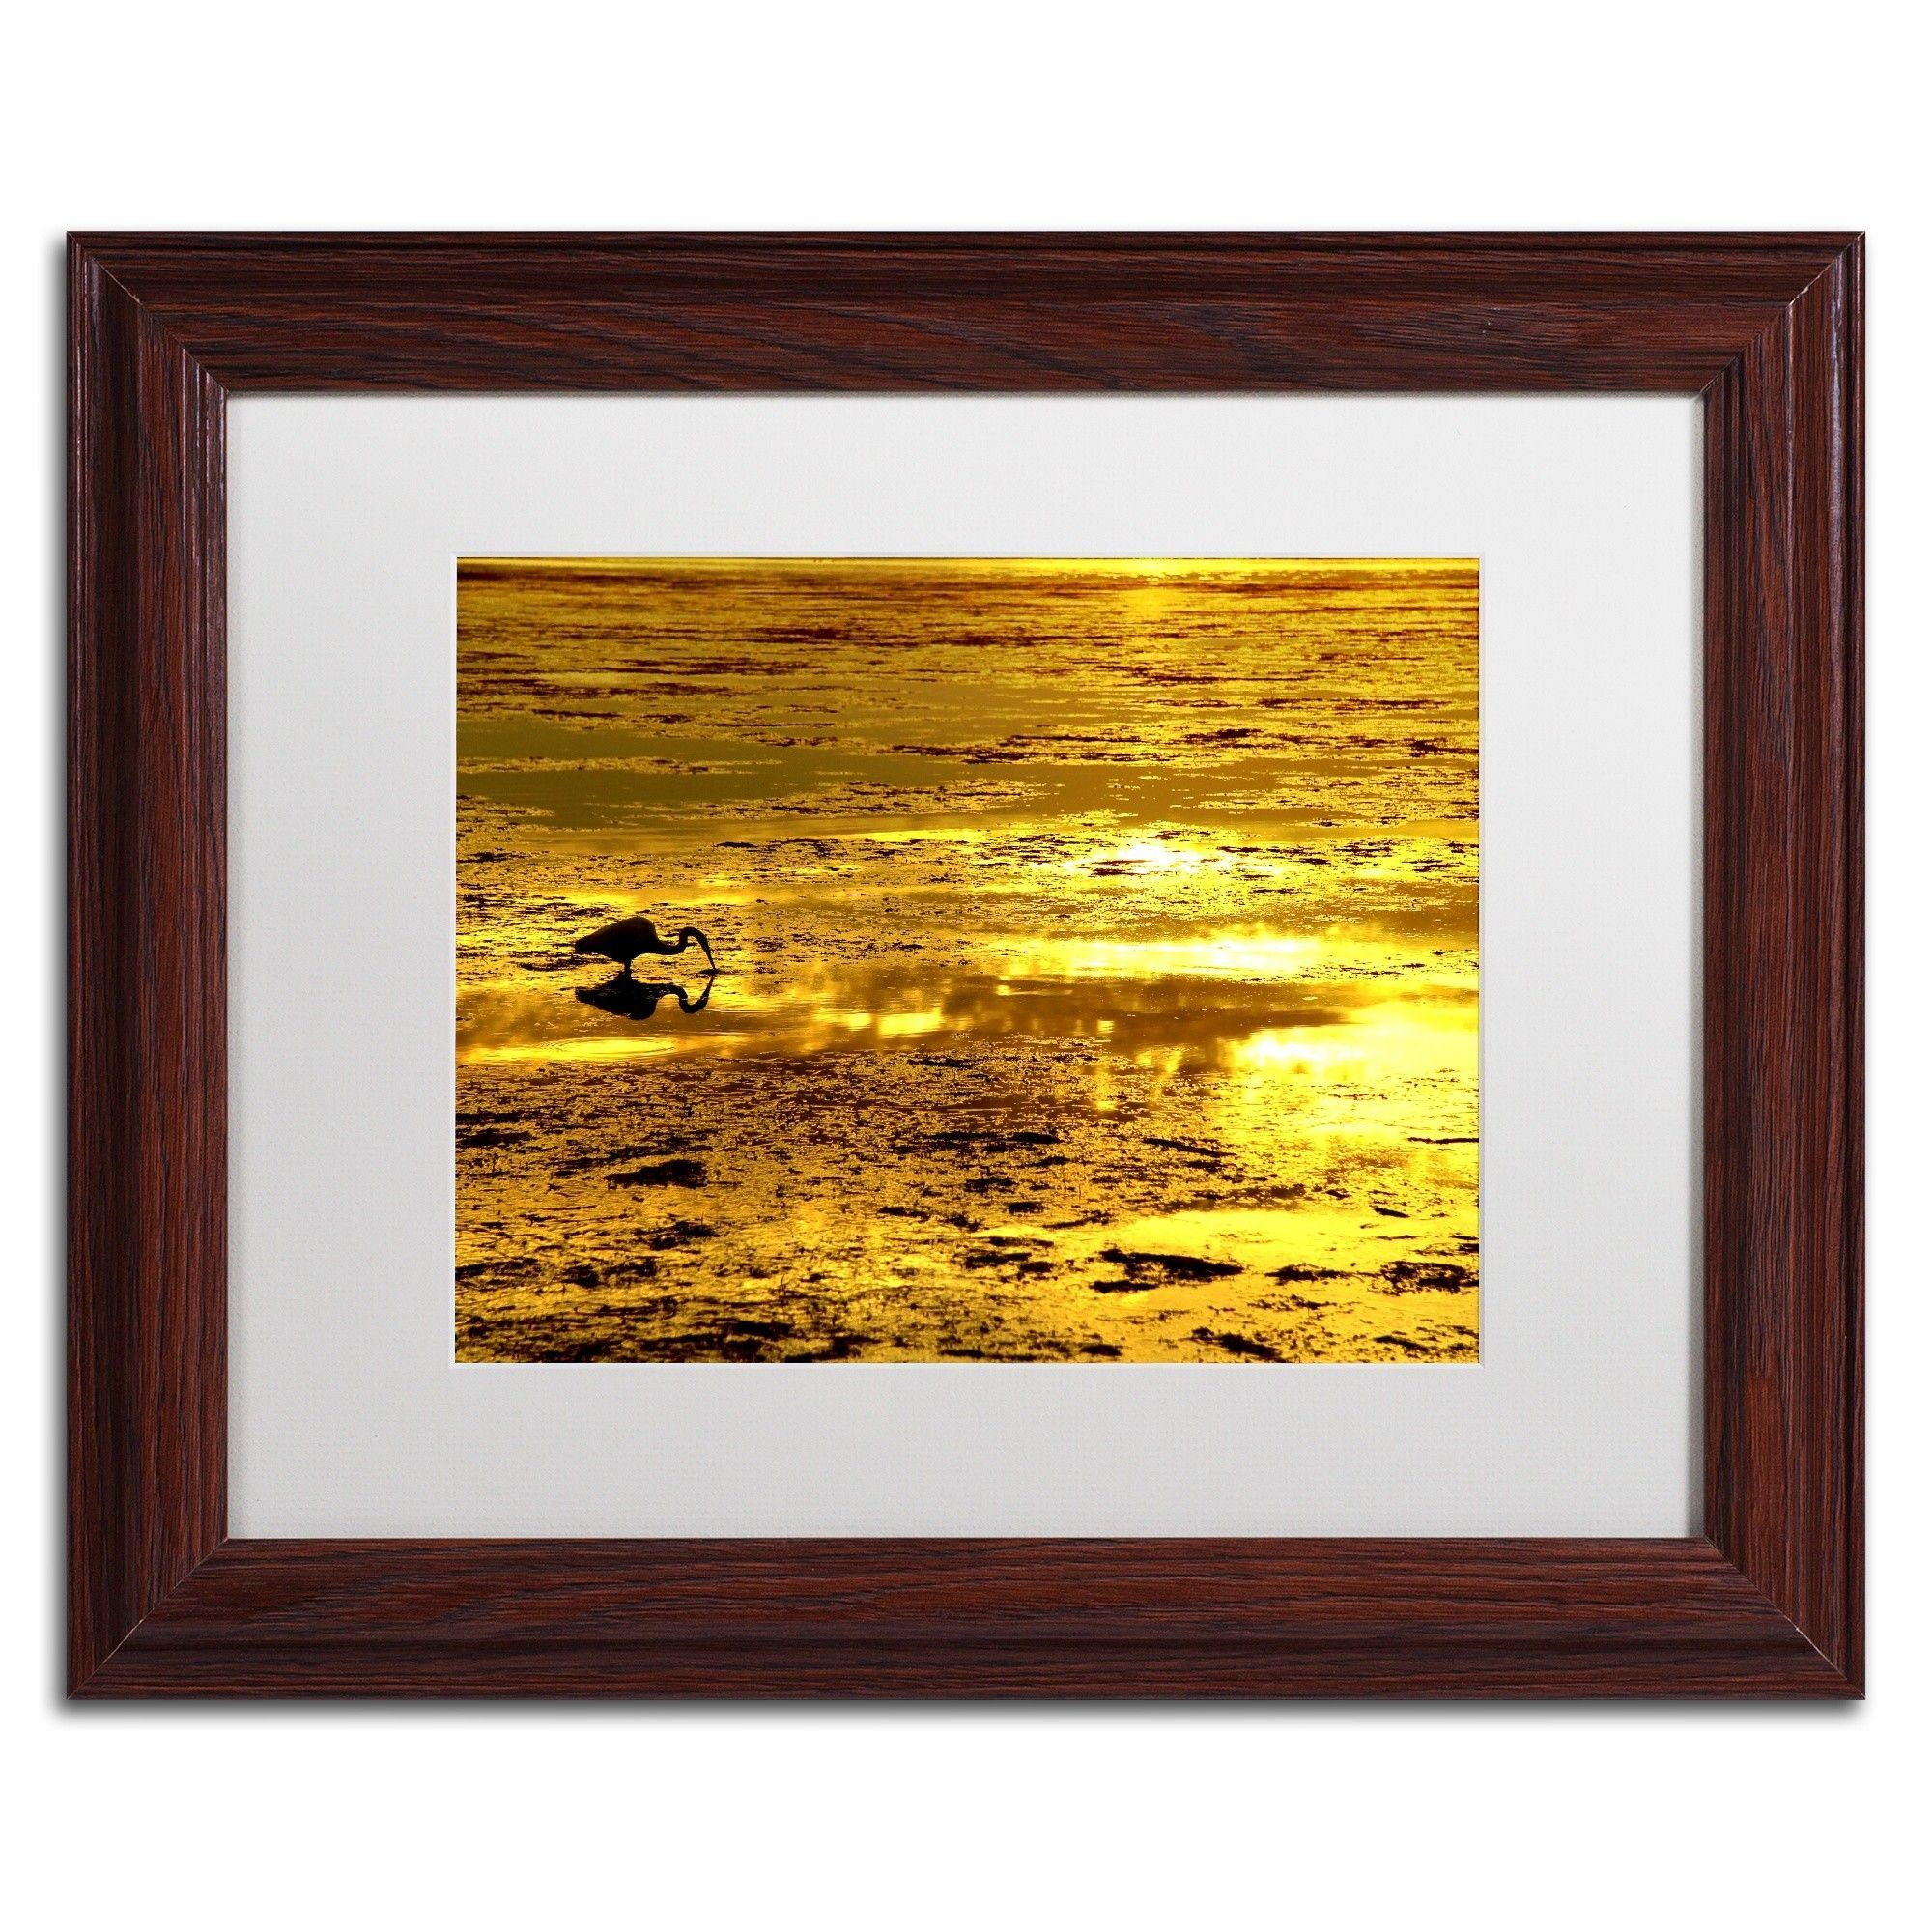 Gold Digger by Beata Czyzowska Young Matted Framed Photographic ...